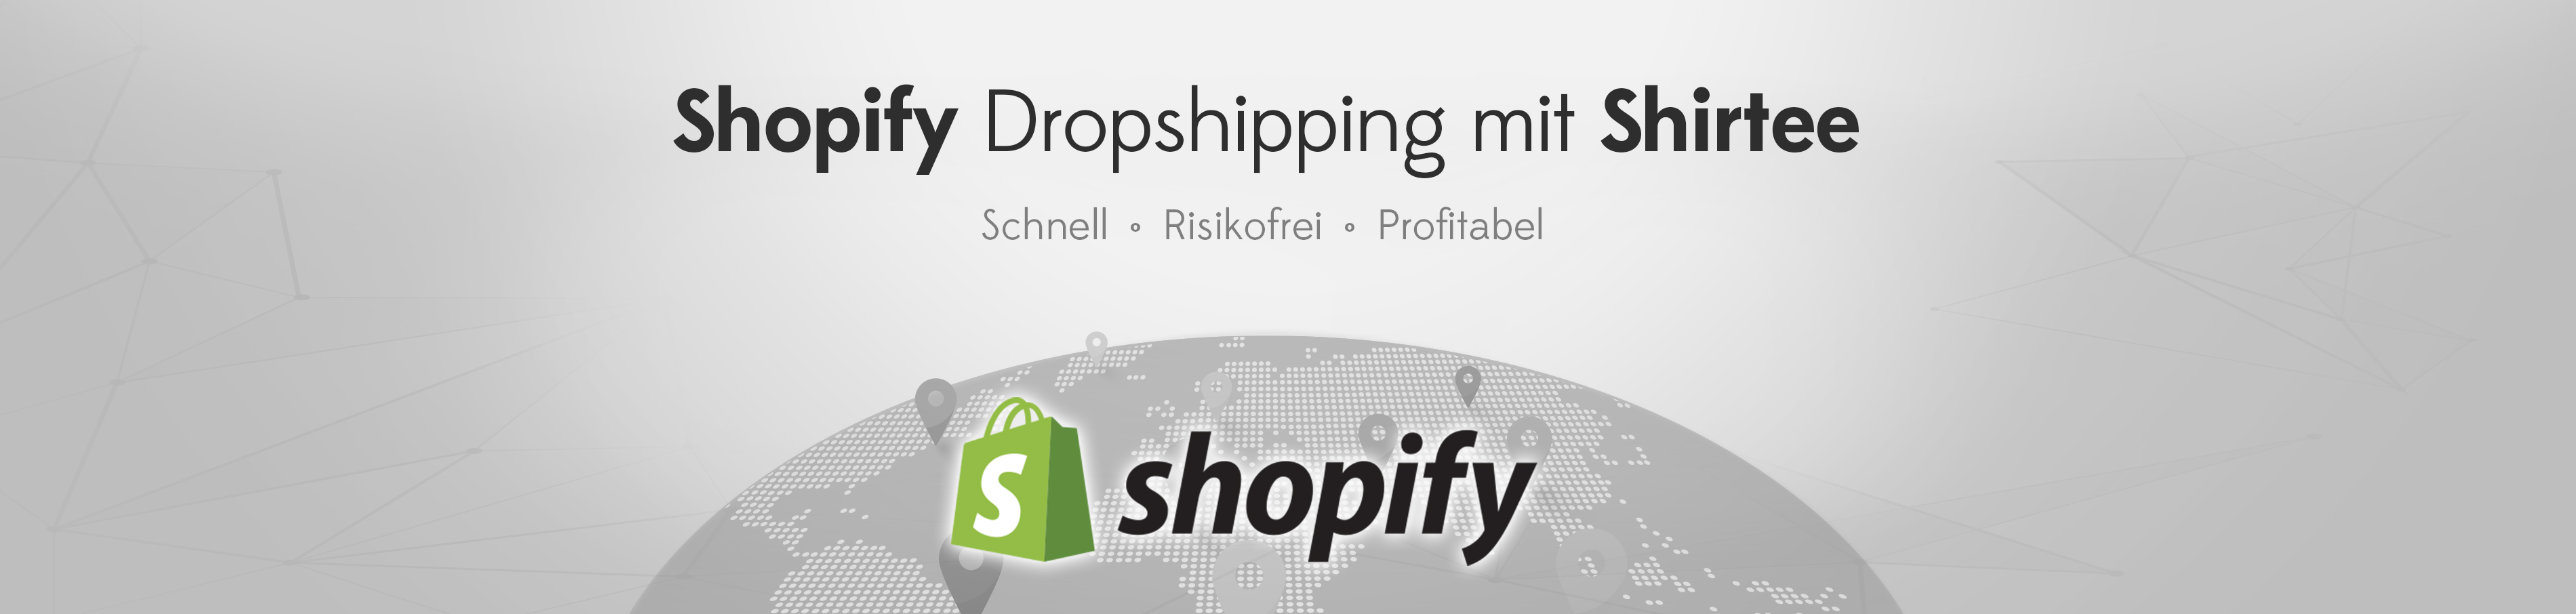 Merchandise Fulfillment Shopify